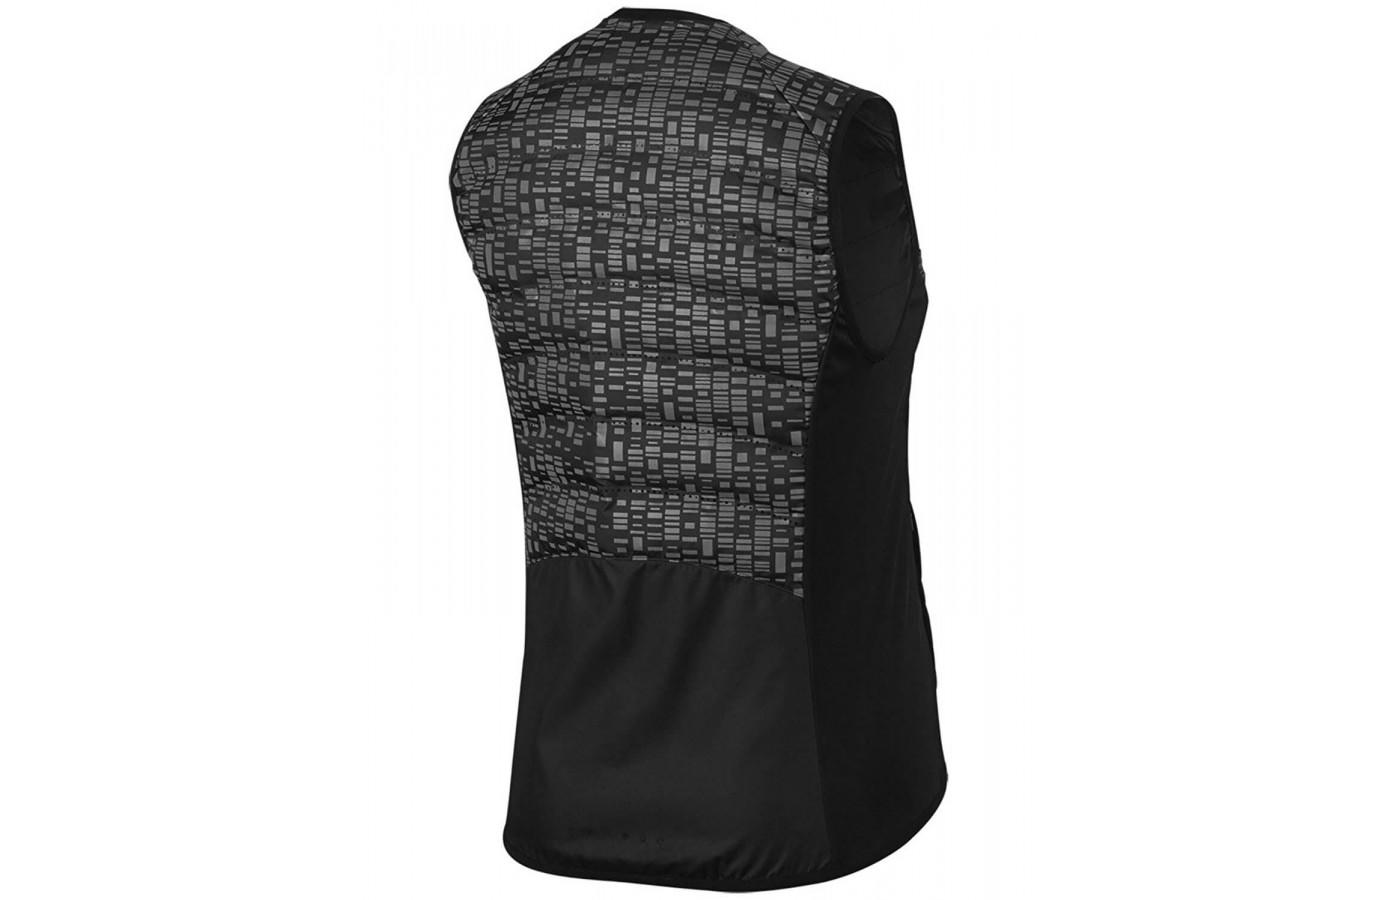 new products 64d99 01a15 ... The Aeroloft Flash vest features warm insulated panels with Nike Flex  fabric on the sides ...